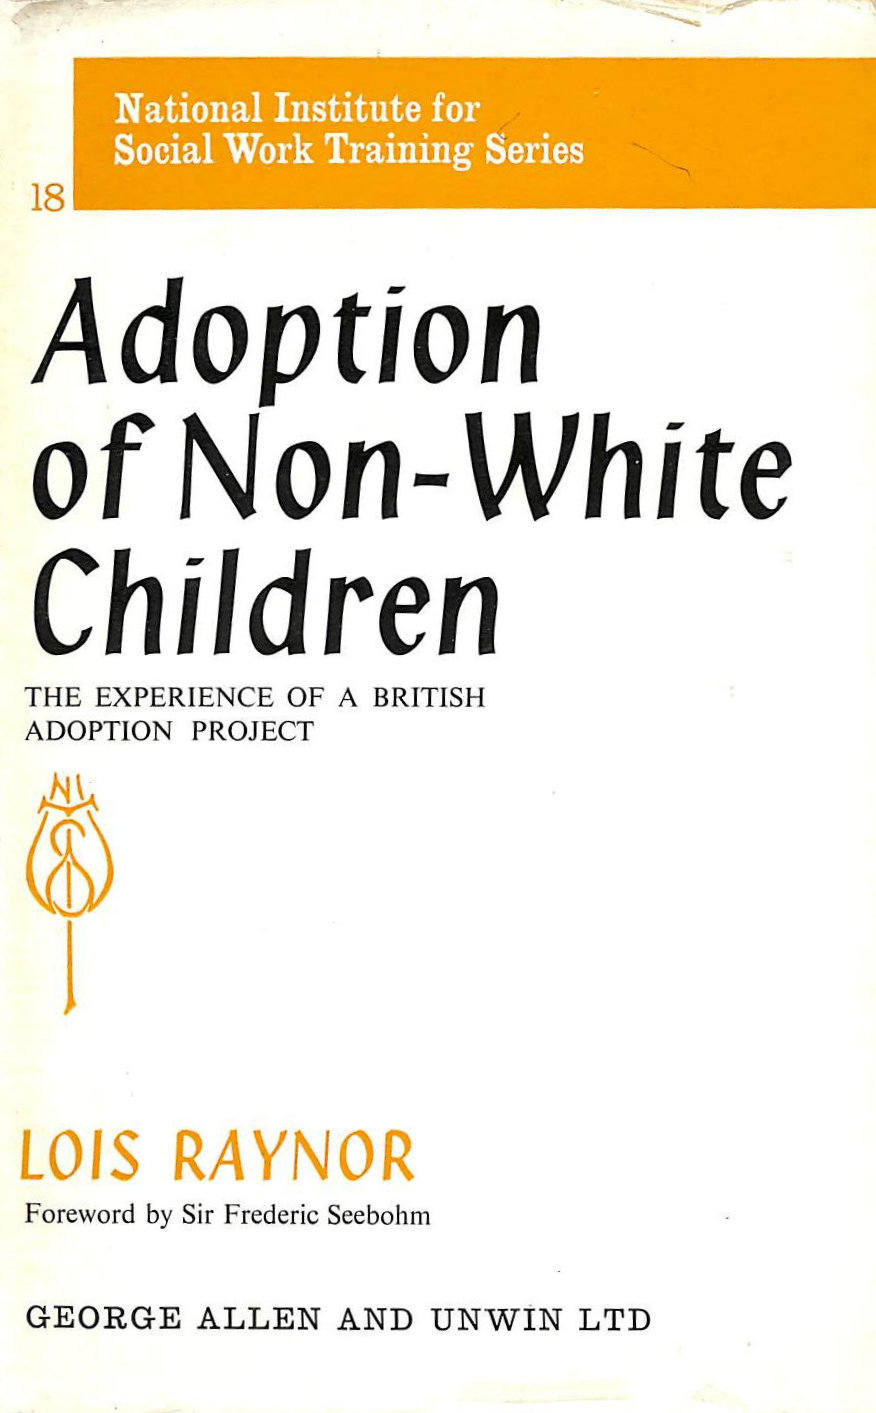 Image for Adoption of Non-white Children: Experience of a British Adoption Policy (Series / National Institute for Social Work Training)